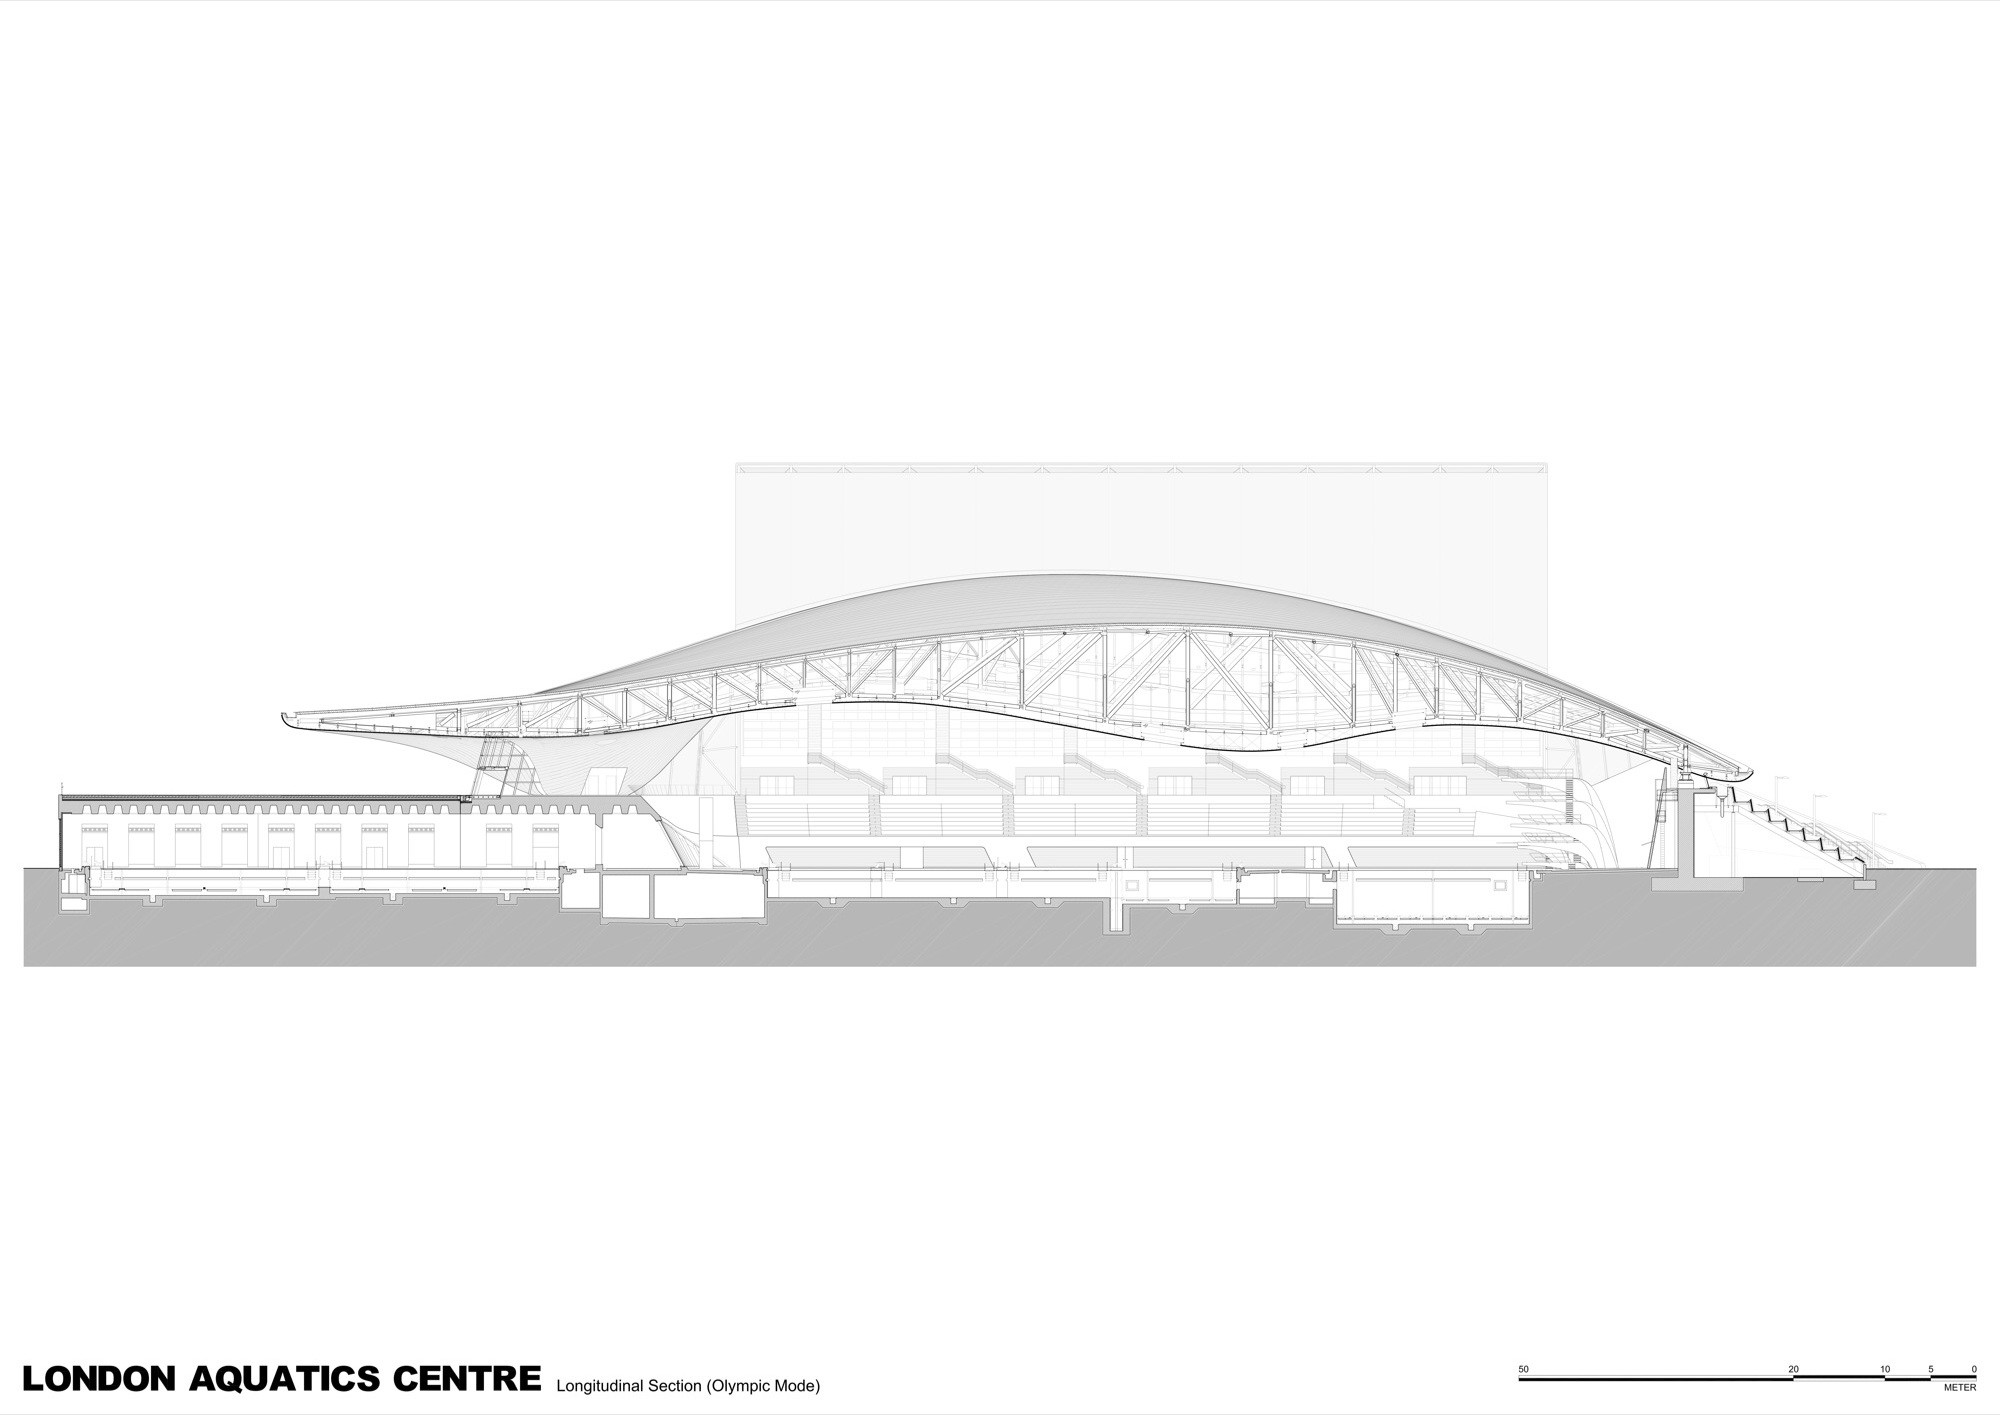 olympic swimming pool 2012. Longitudinal Section (Olympic Mode) Olympic Swimming Pool 2012 N